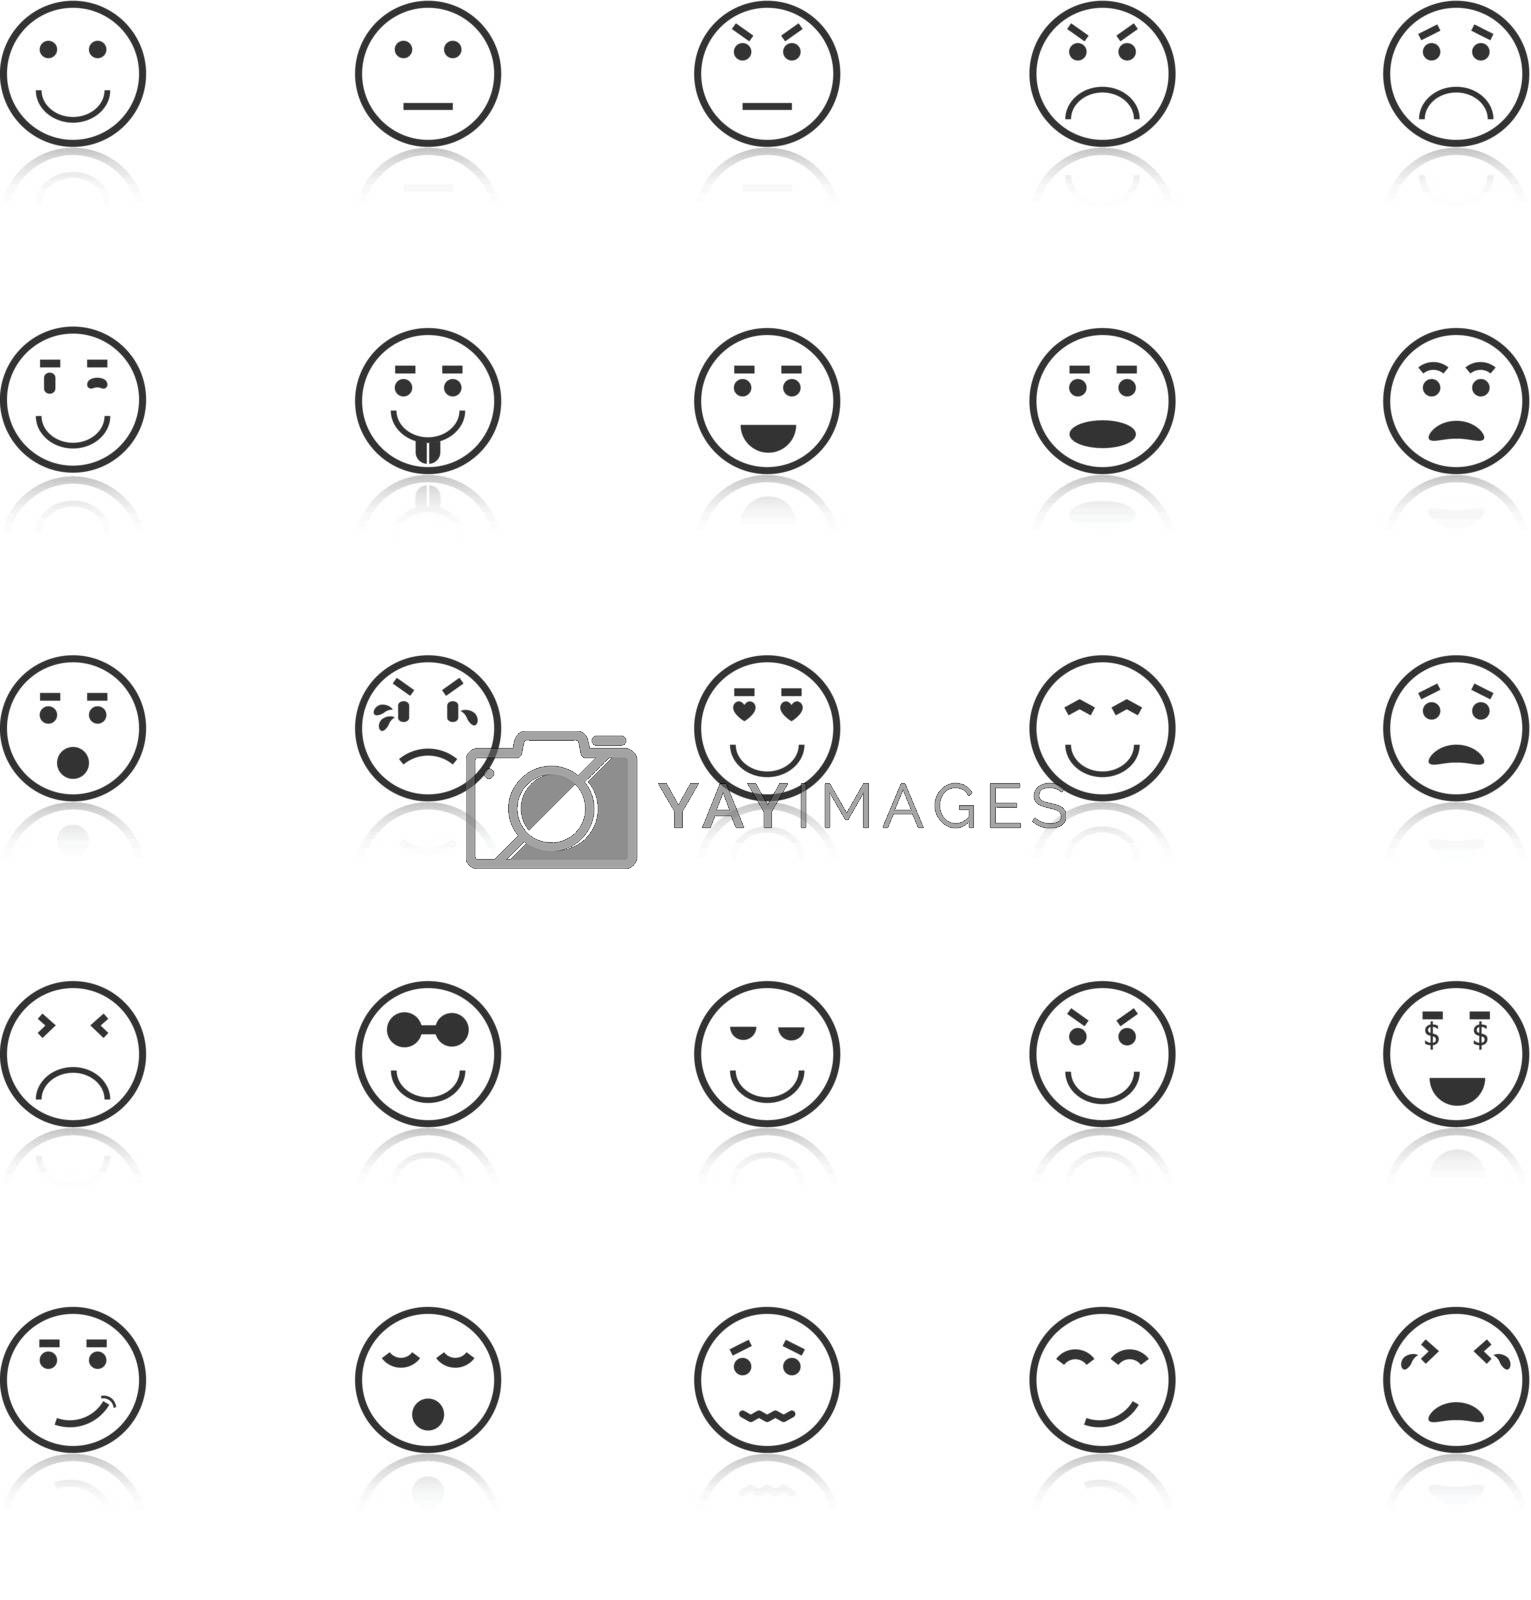 Circle face icons with reflect on white background, stock vector